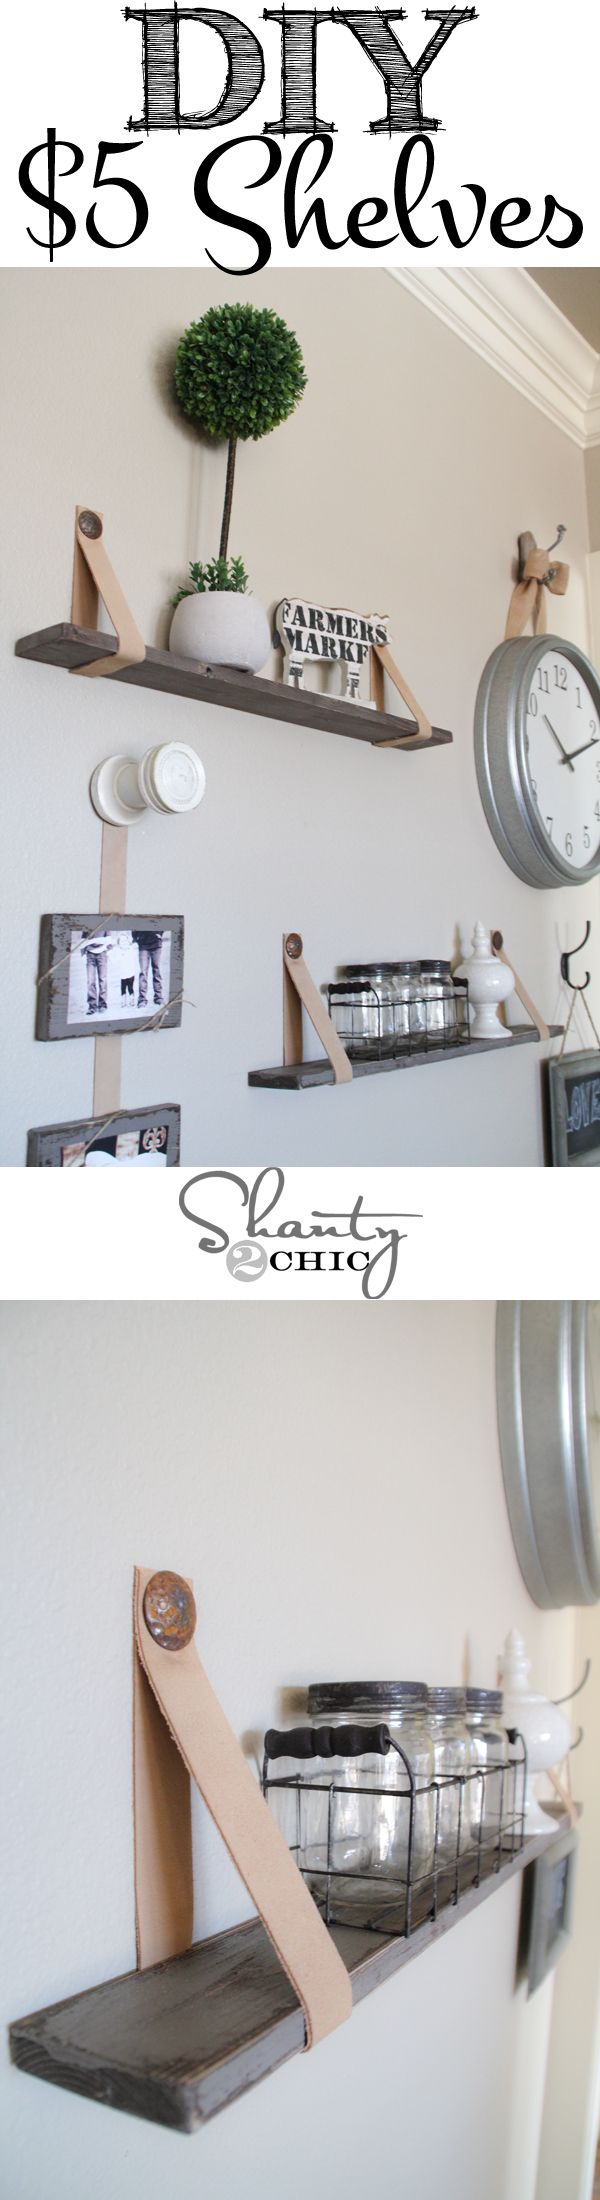 Easy $5 shelves with leather straps! This is so cool! Love!